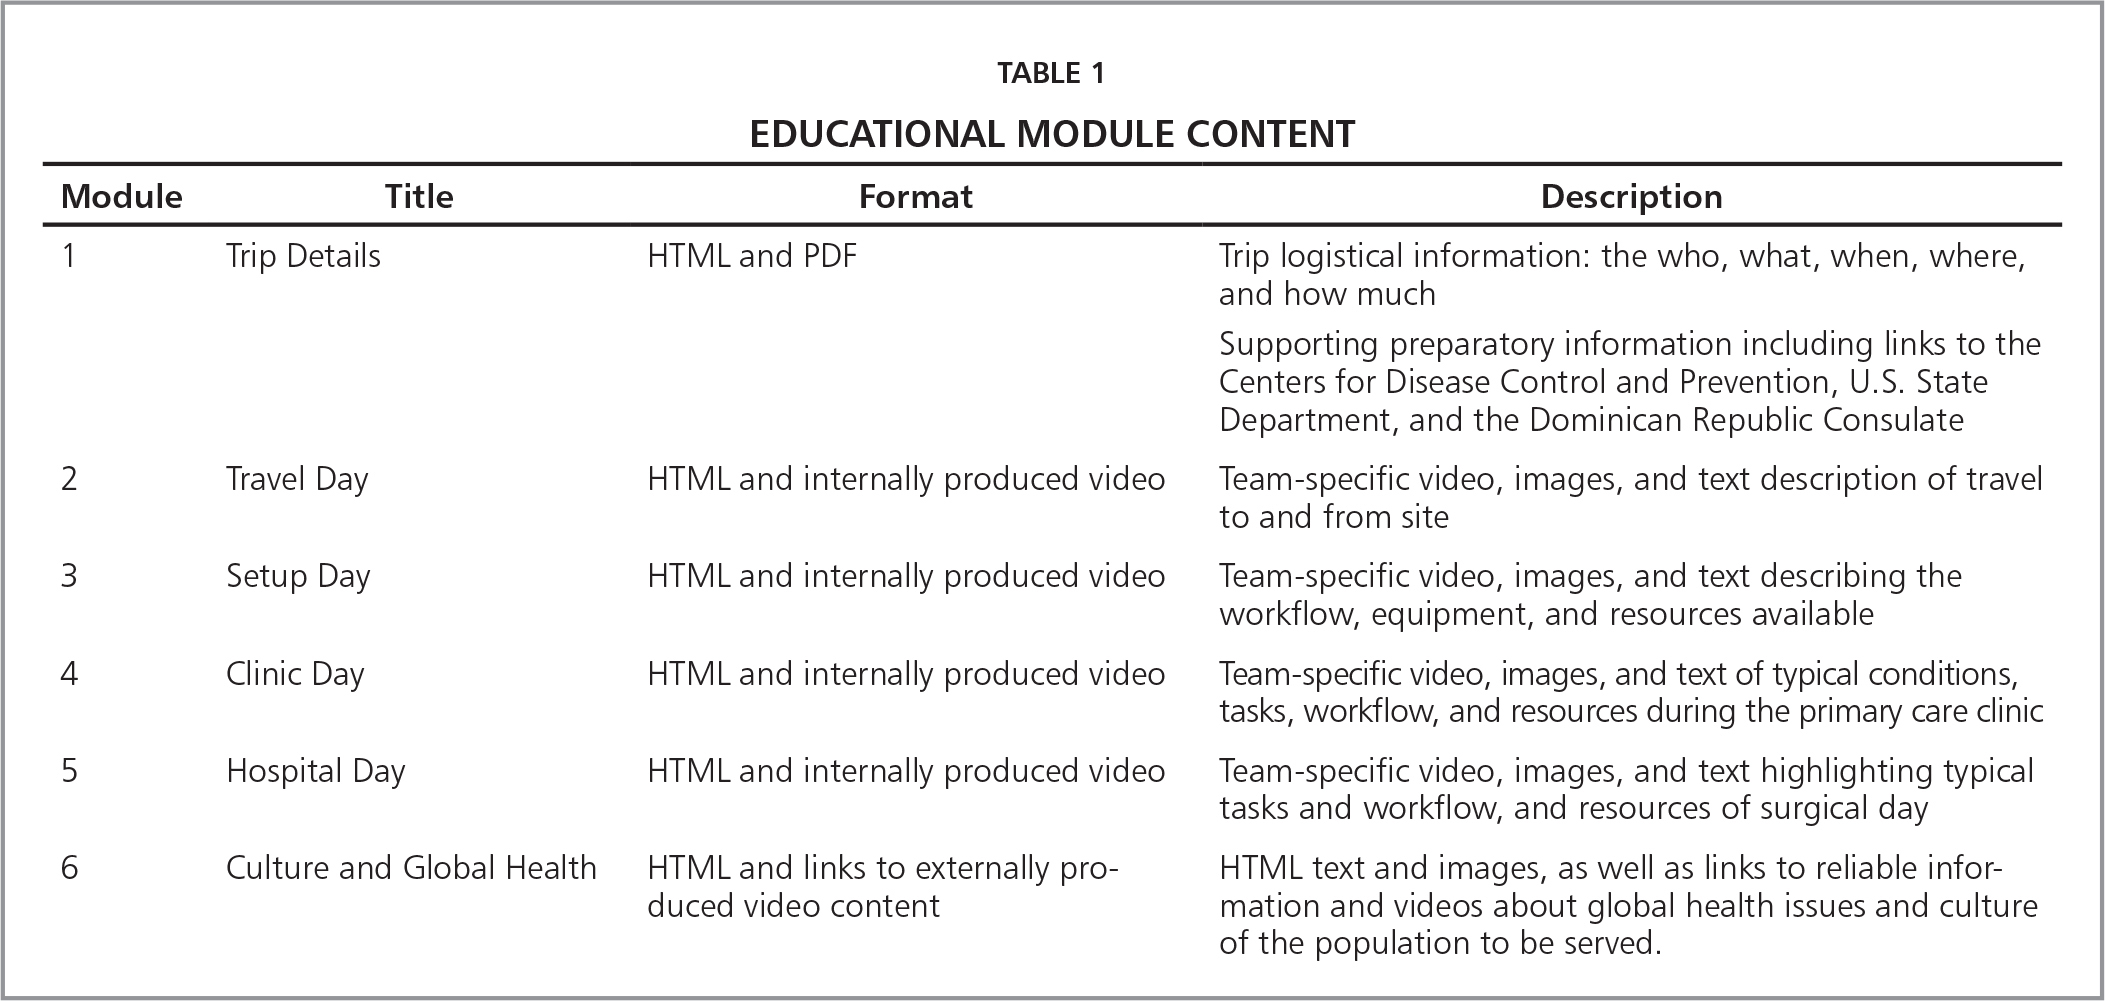 Educational Module Content